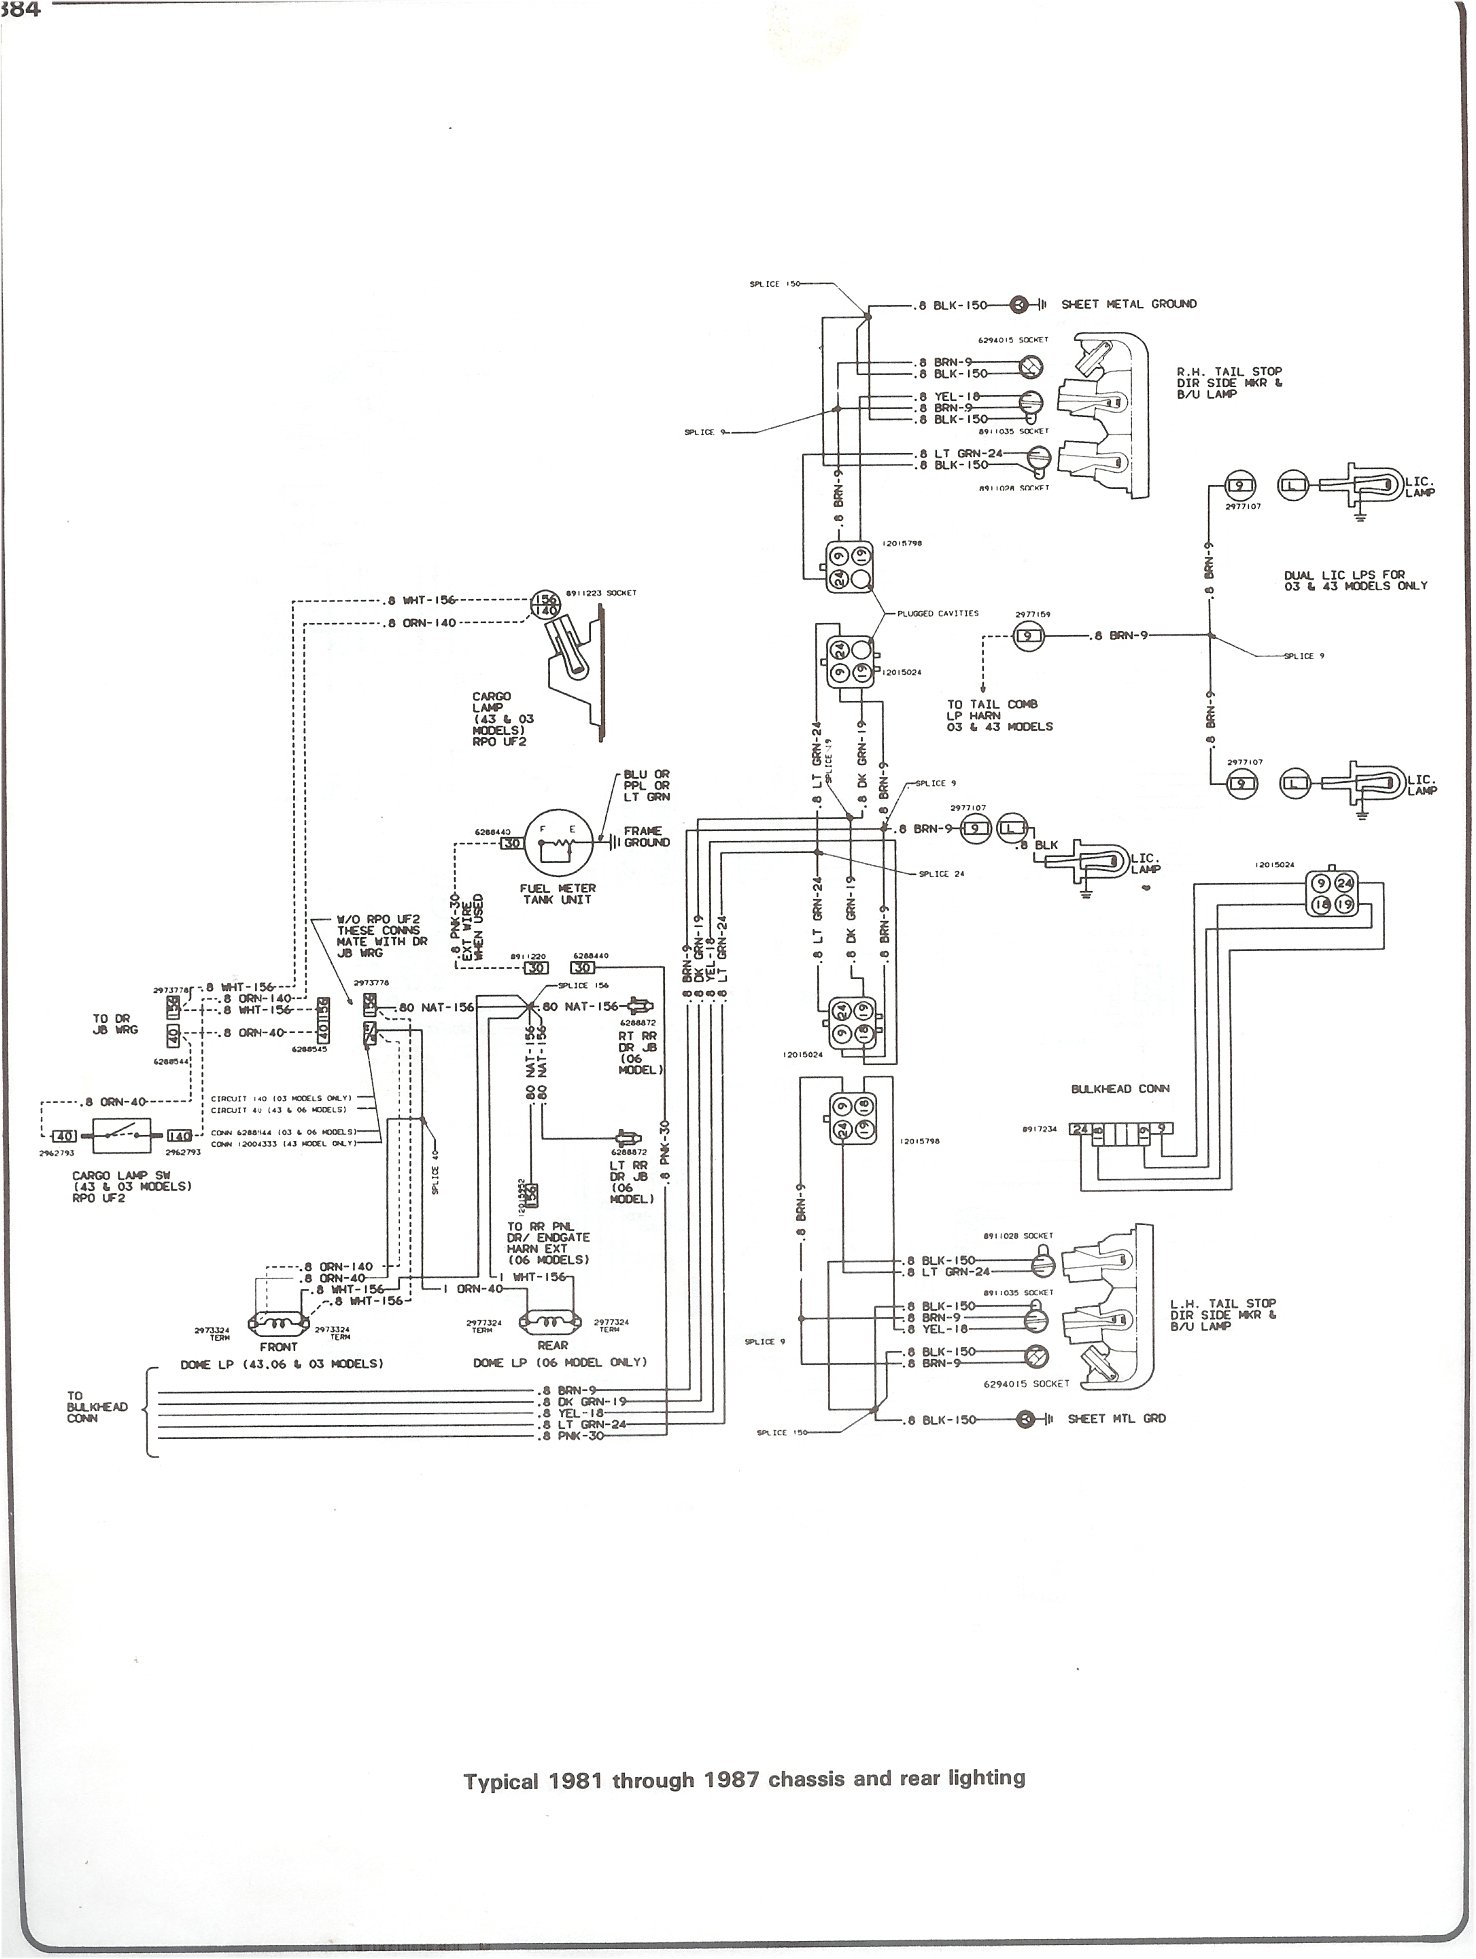 55b359 1990 gmc 3500 wiring diagram | wiring resources  wiring resources